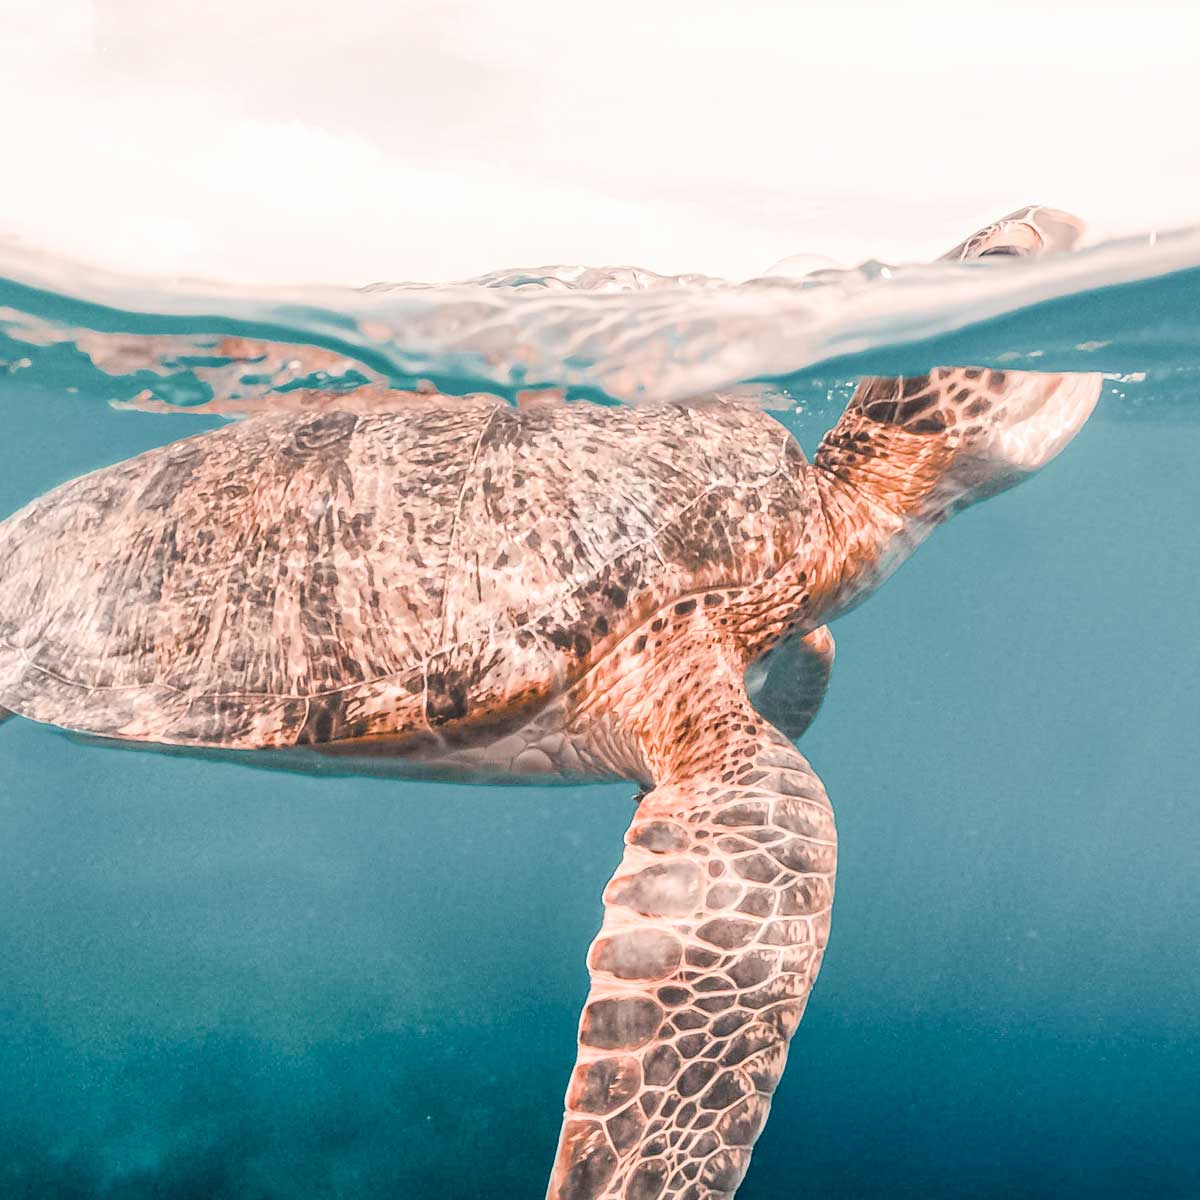 a sea turtle swimming in clear ocean water